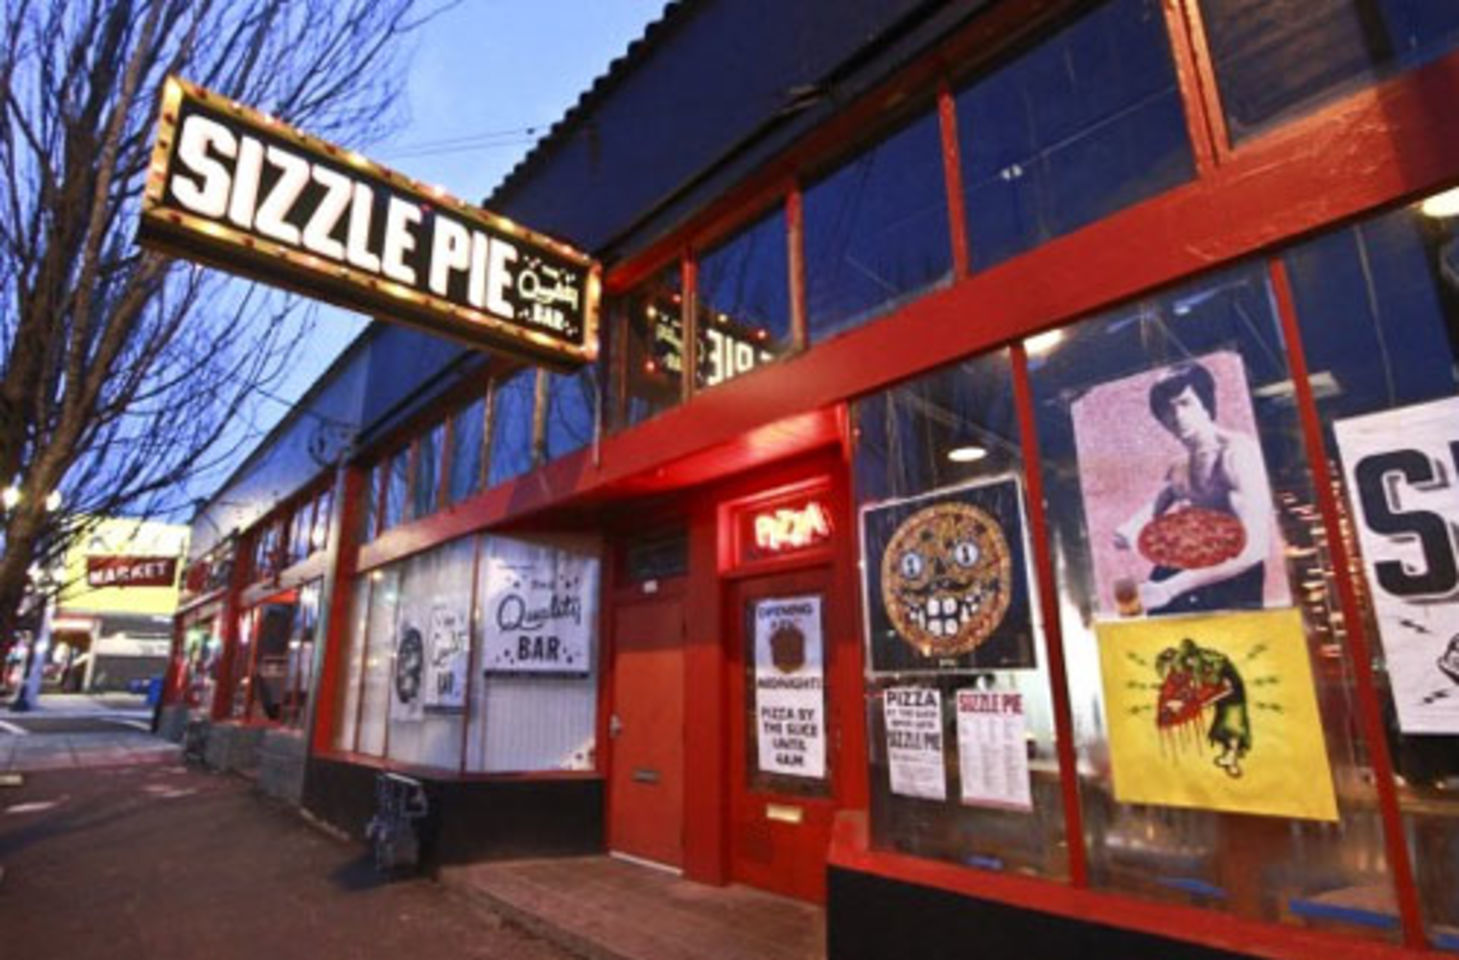 A photo of Sizzle Pie, East Burnside